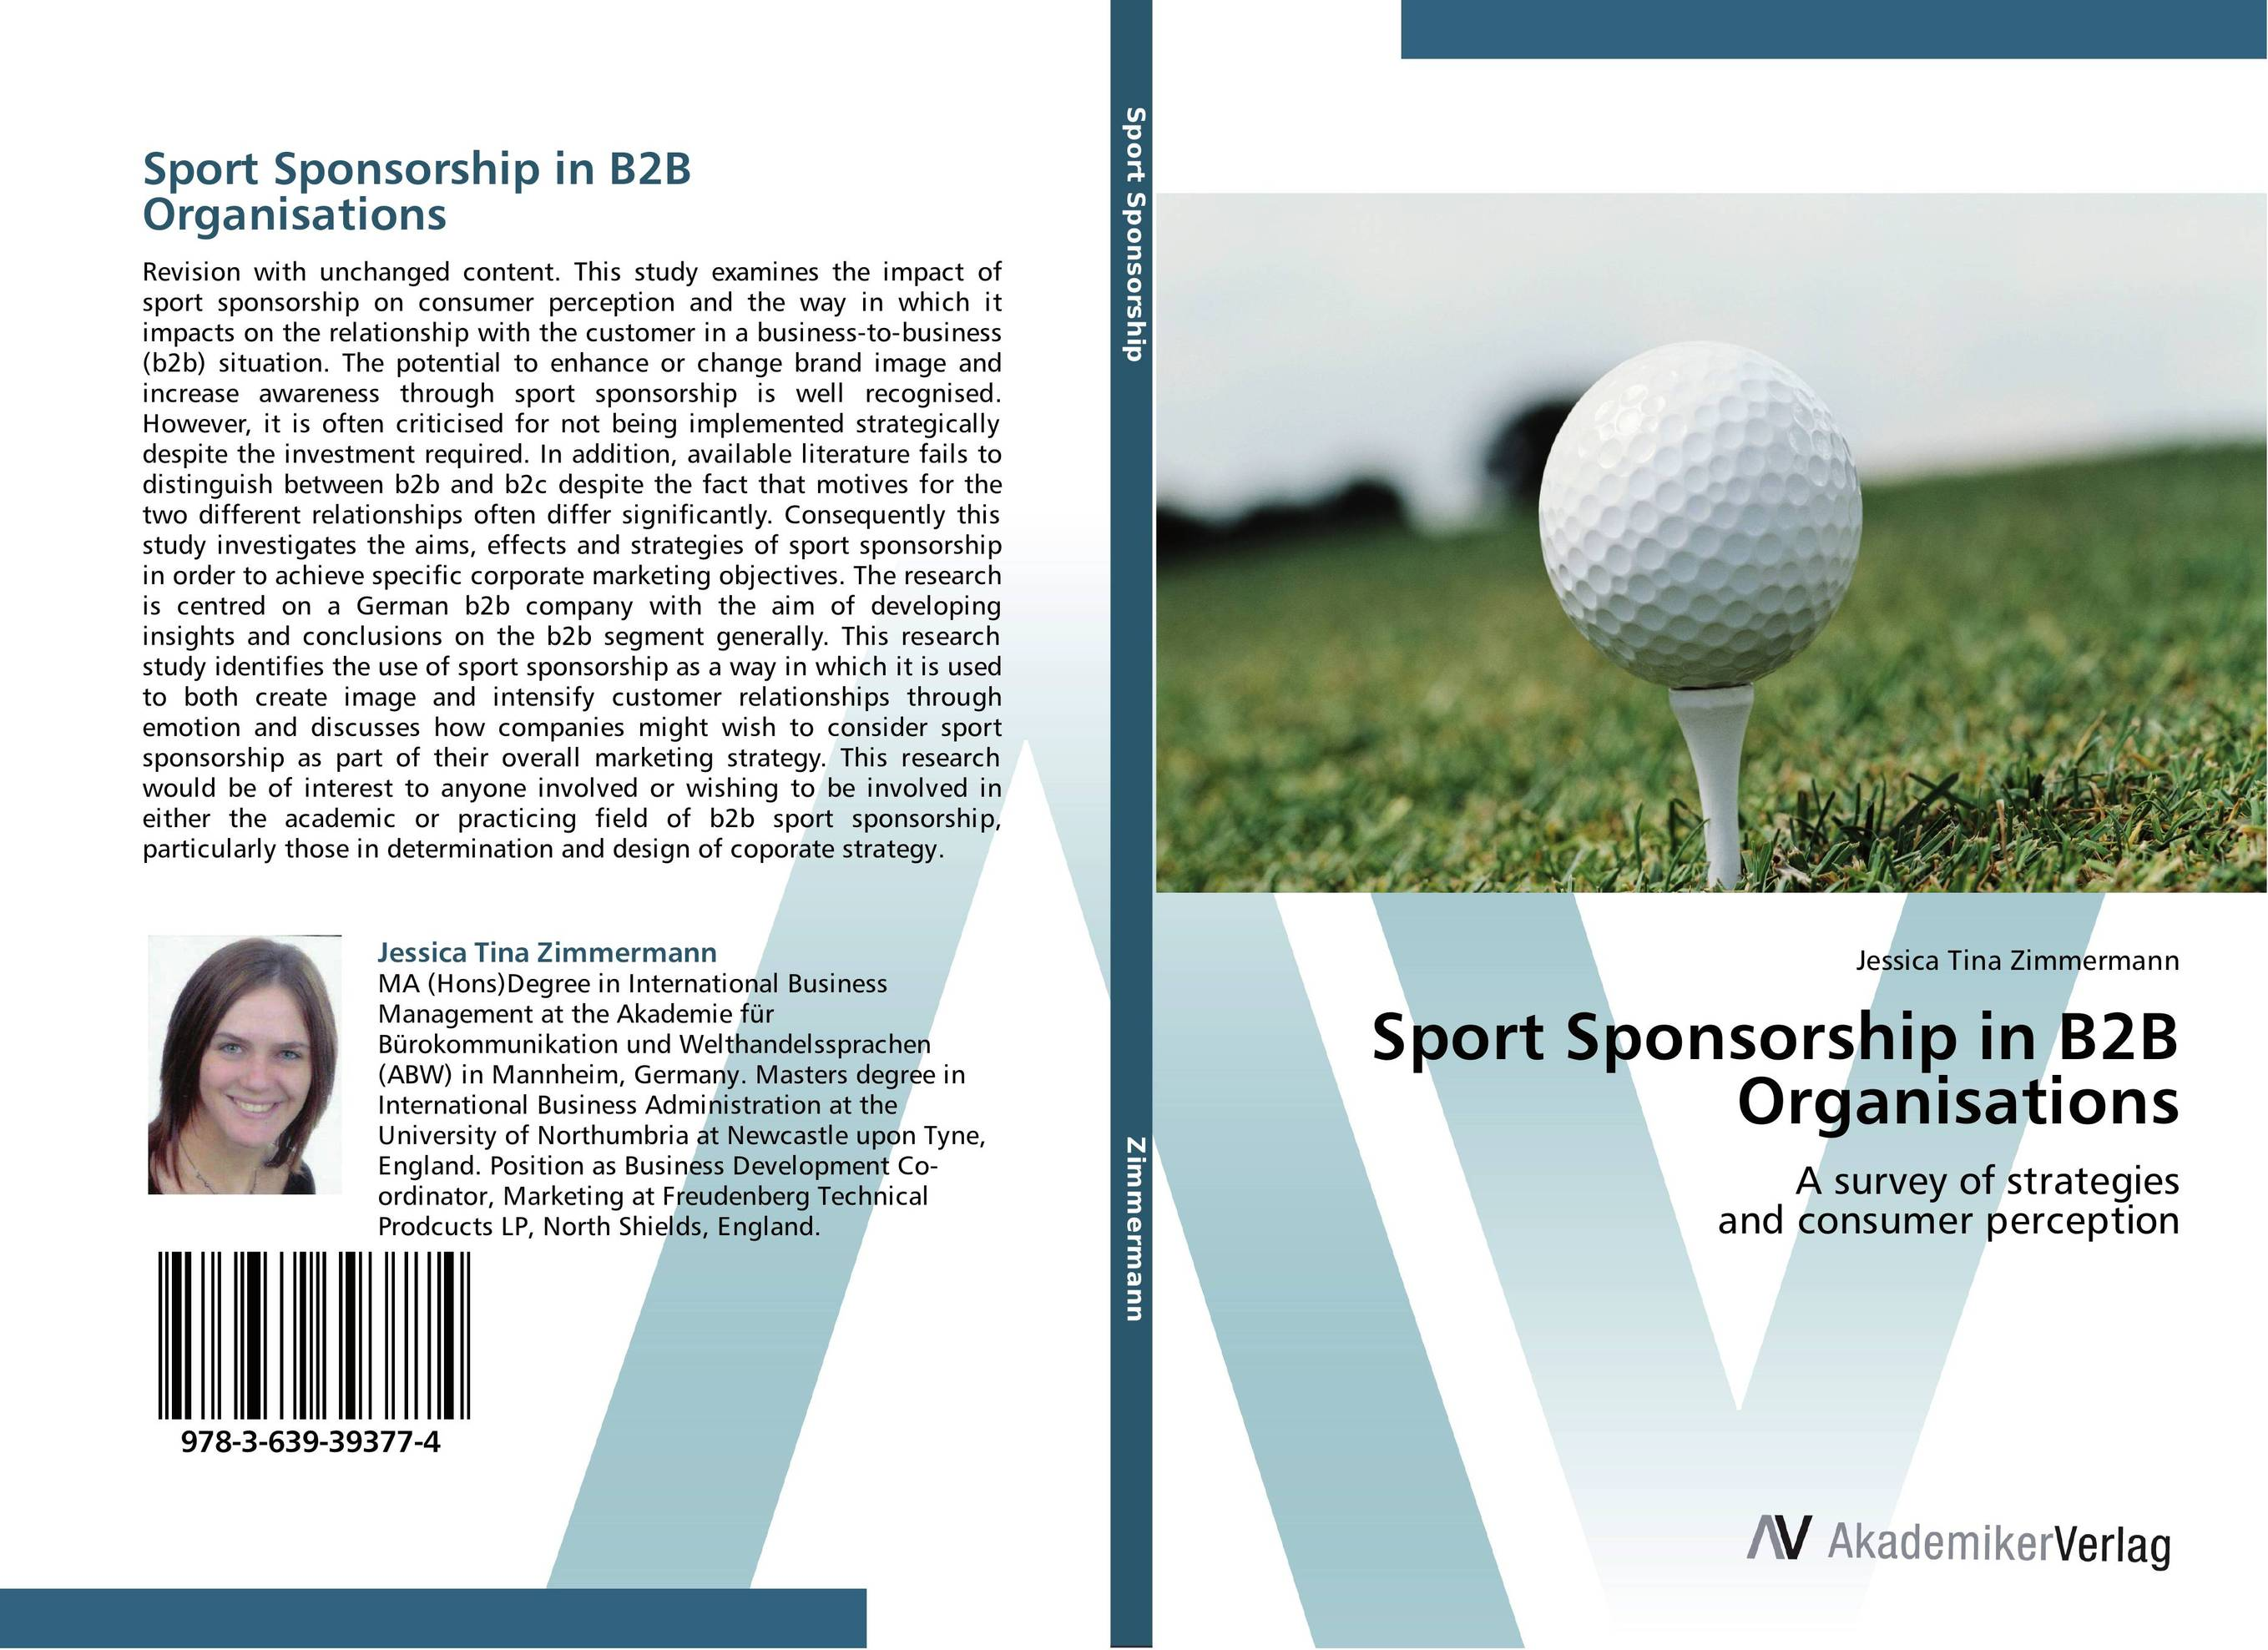 Sport Sponsorship in B2B Organisations made possible by succeeding with sponsorship